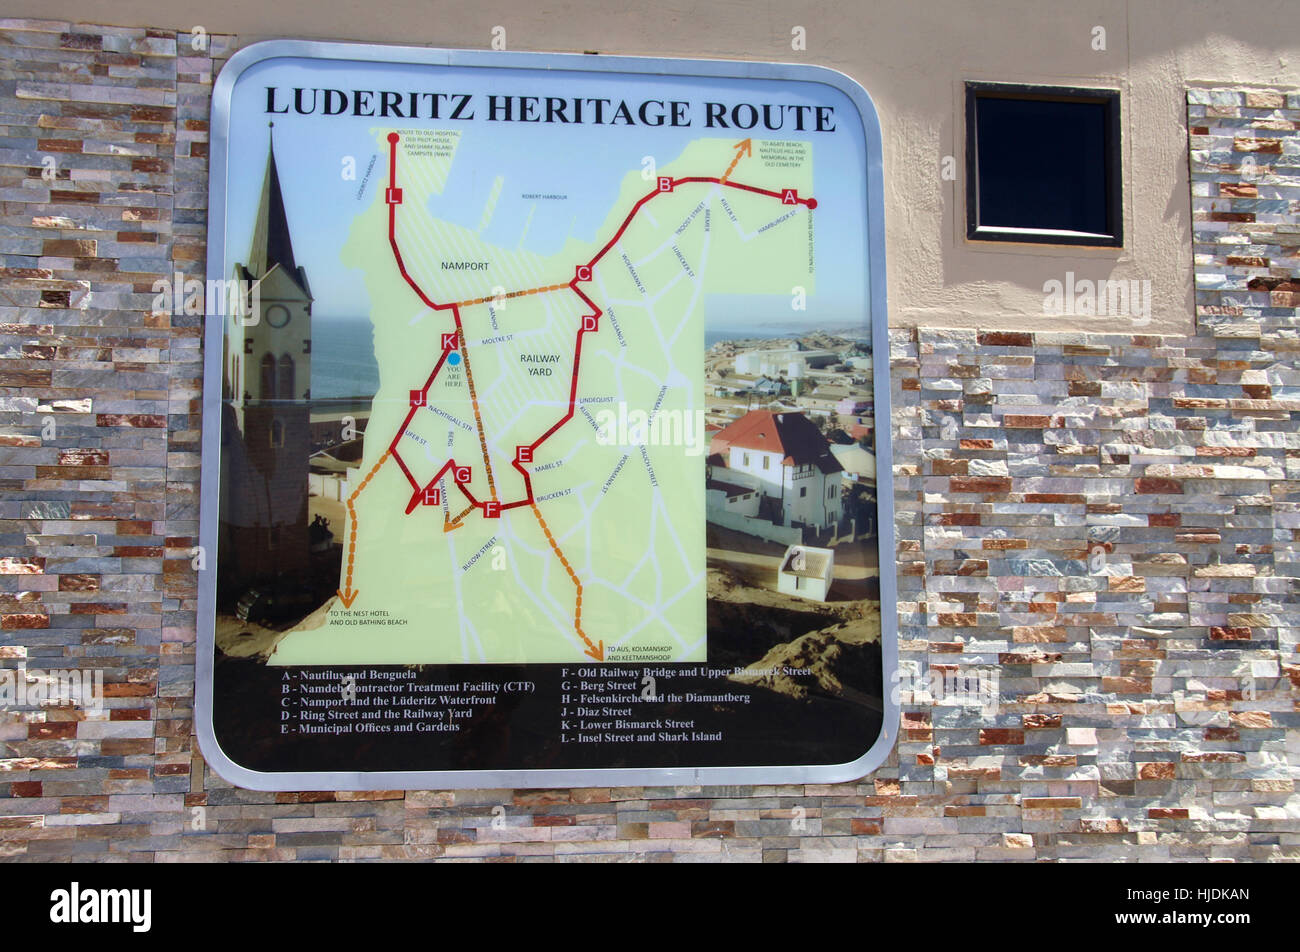 Tourist information map at Luderitz in Namibia Stock Photo